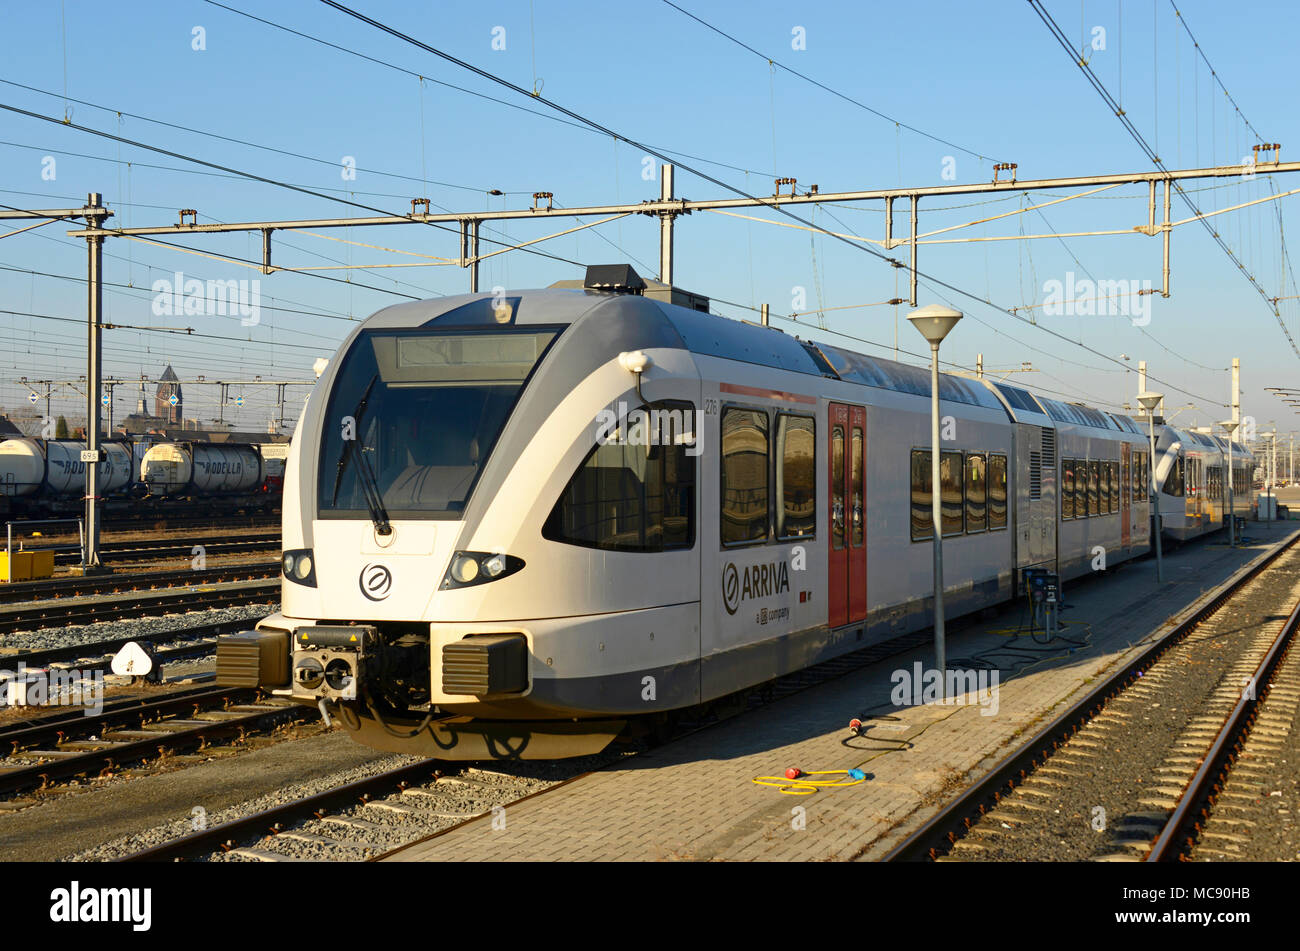 A modern electric multiple unit train parked ready for use at Venlo station in the Netherlands - Stock Image